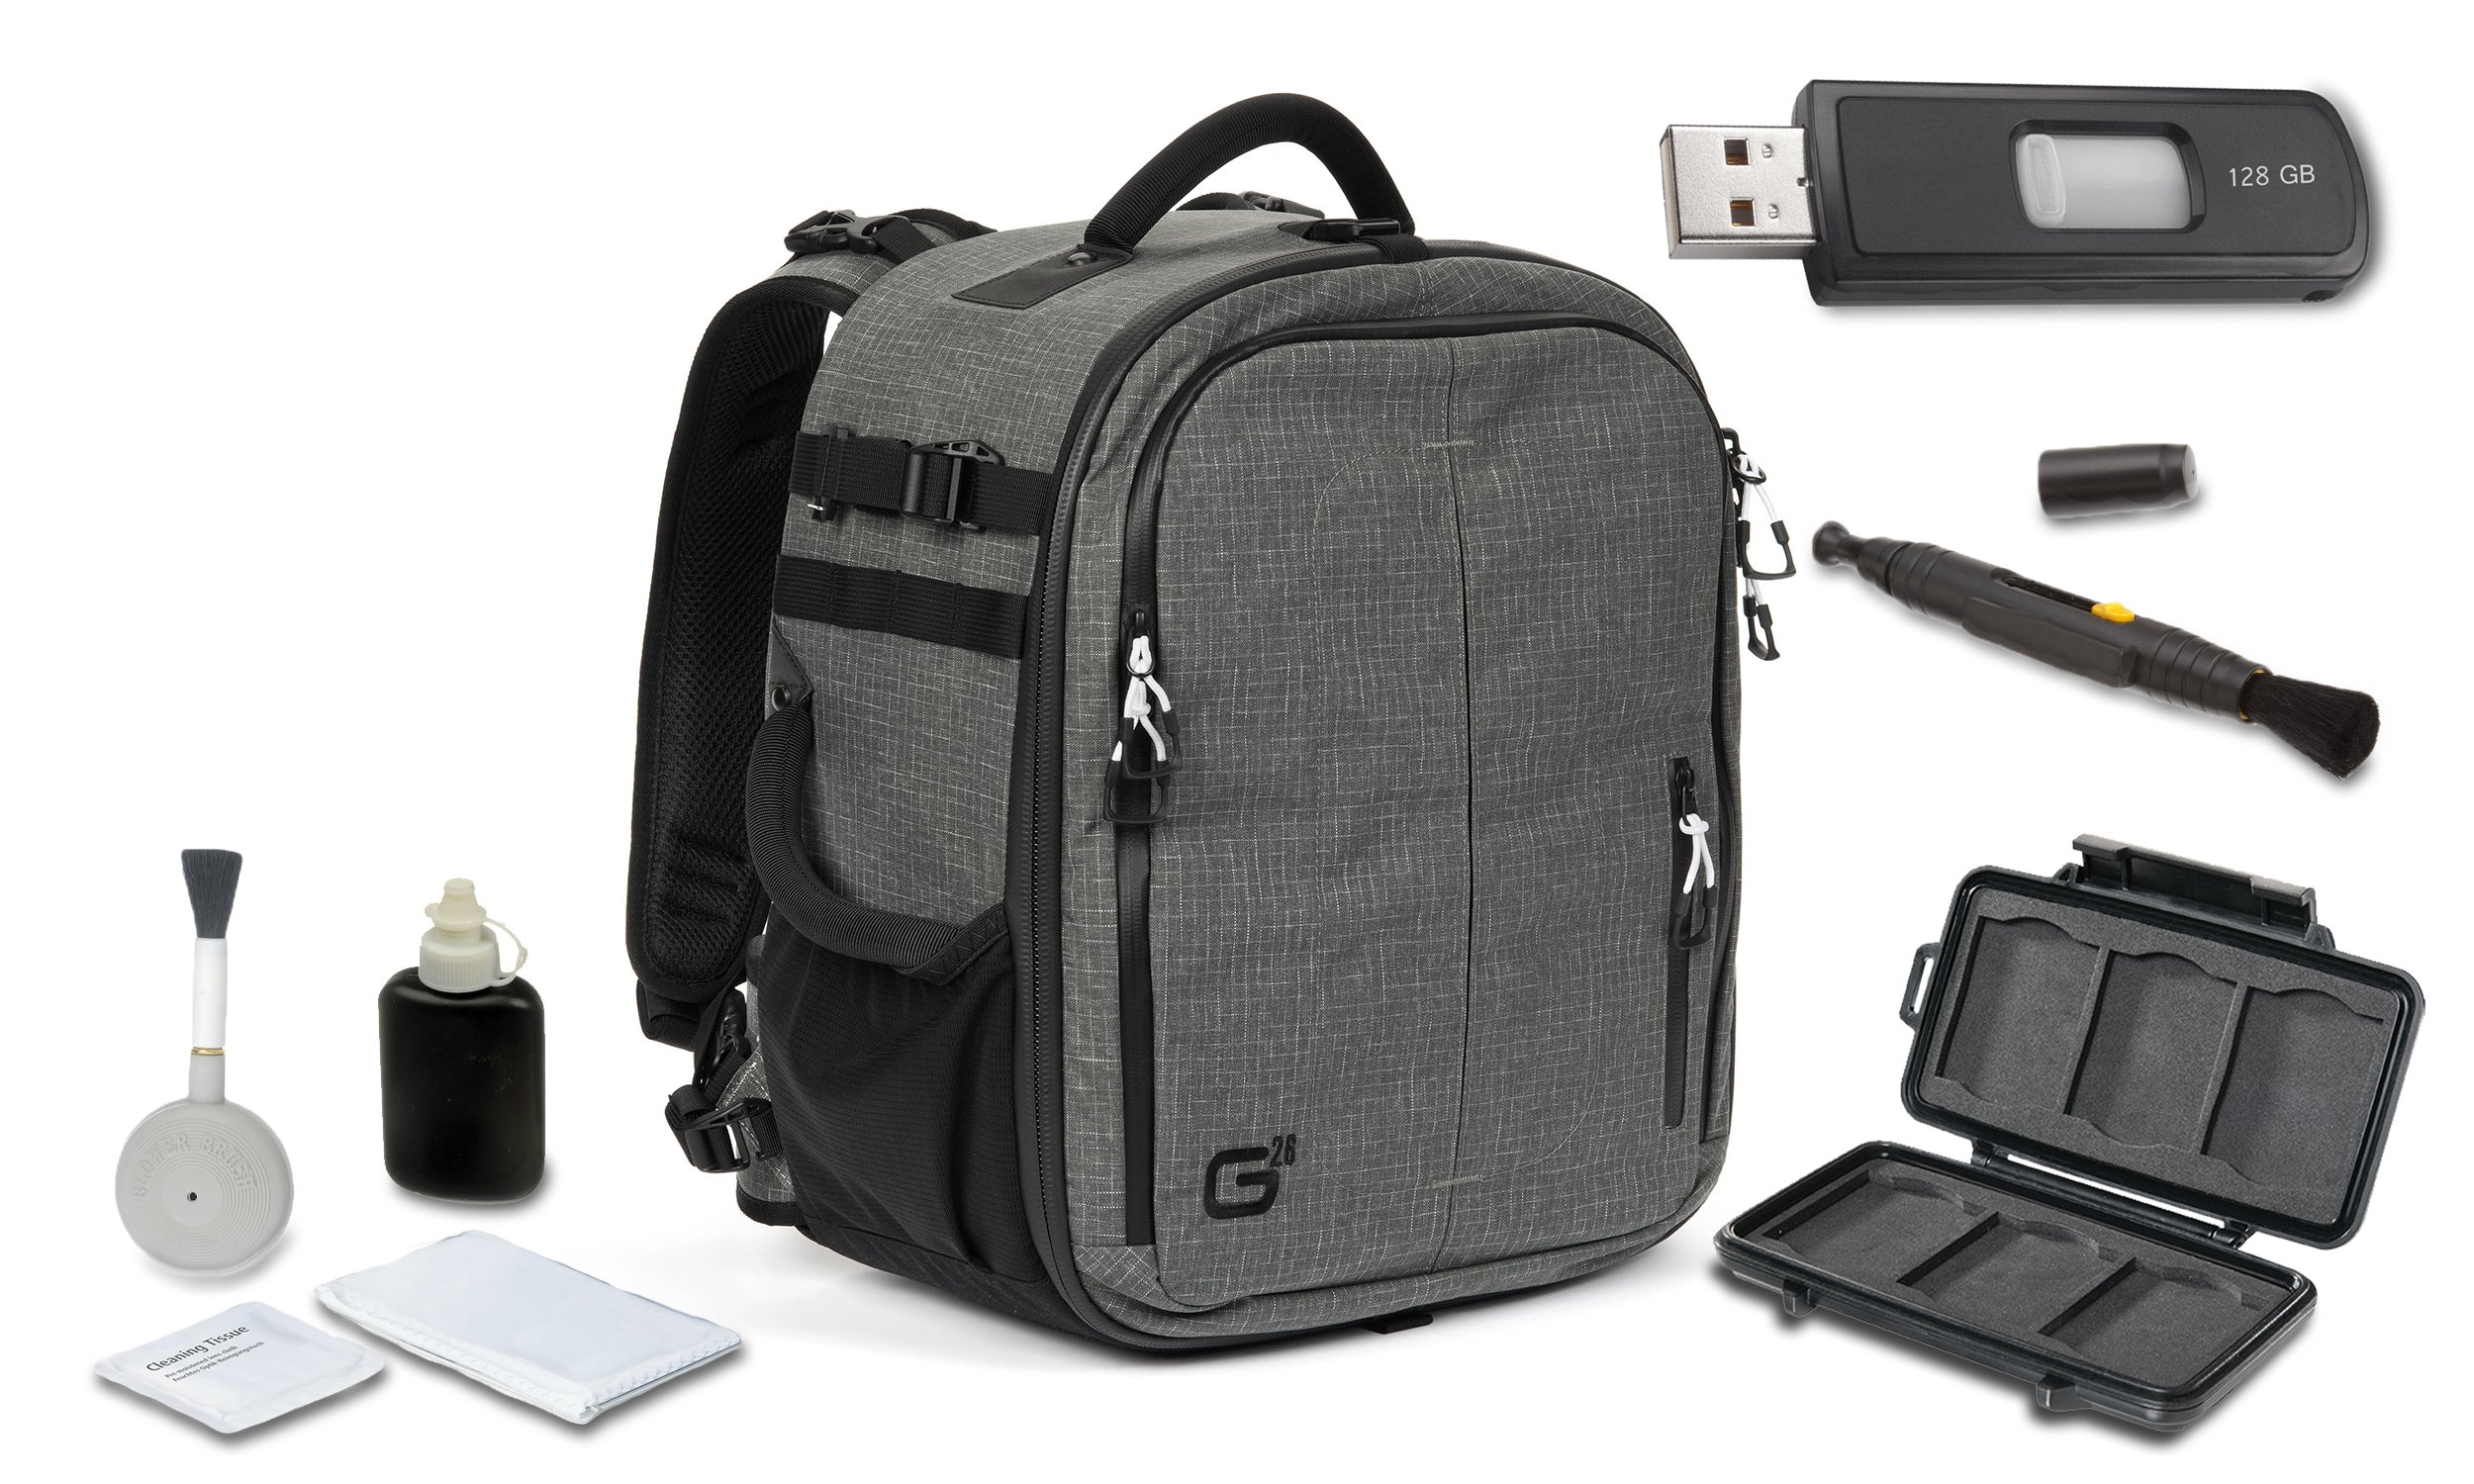 Tamrac G26 Backpack (Dark Olive) + High Speed 128GB USB Stick + Cleaning Kit 4pc + Lens Pen Cleaning Brush + Memory Card Wallet